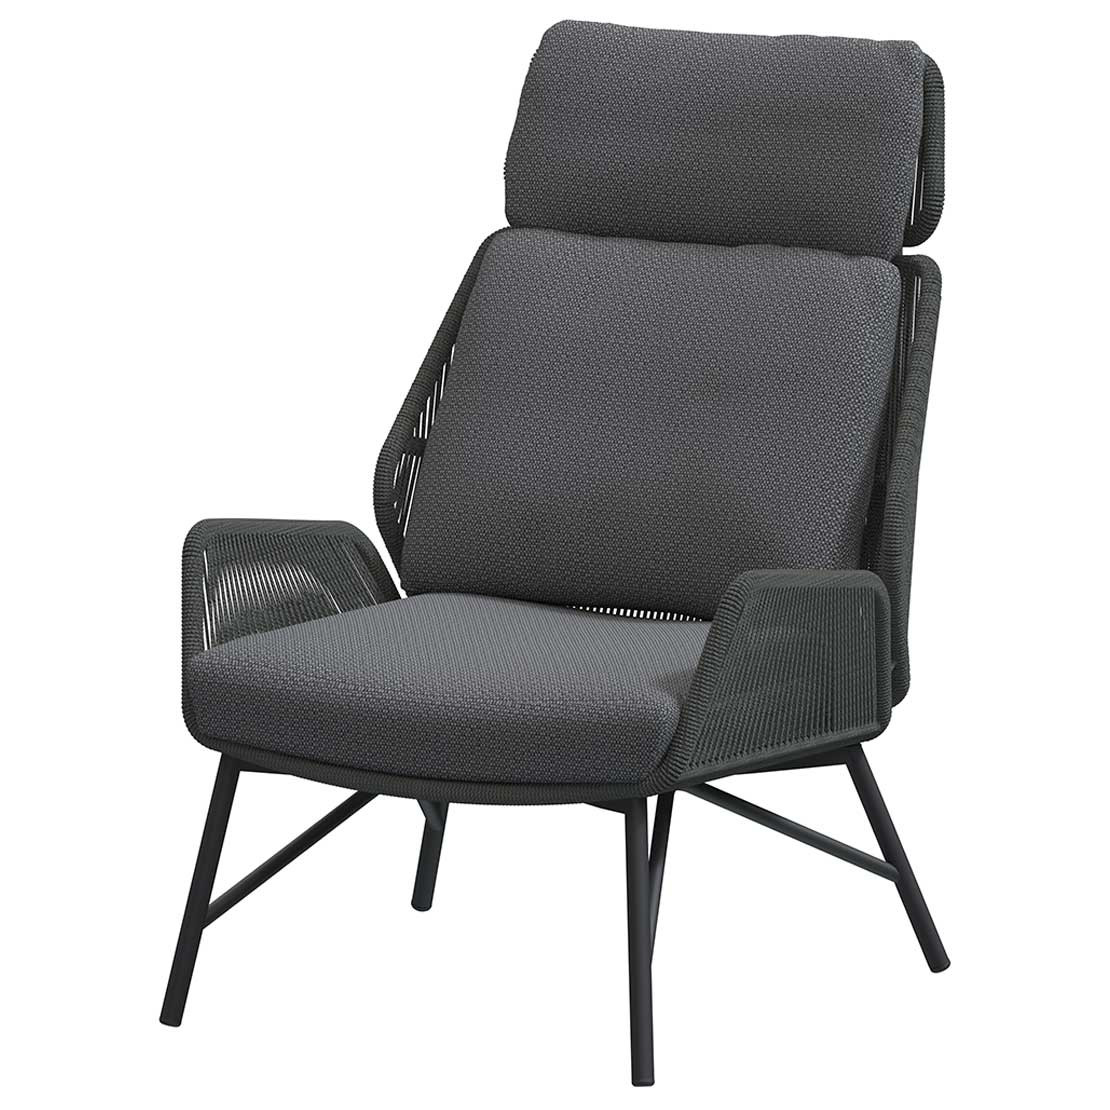 Carthago living chair Platinum with 2 cushions